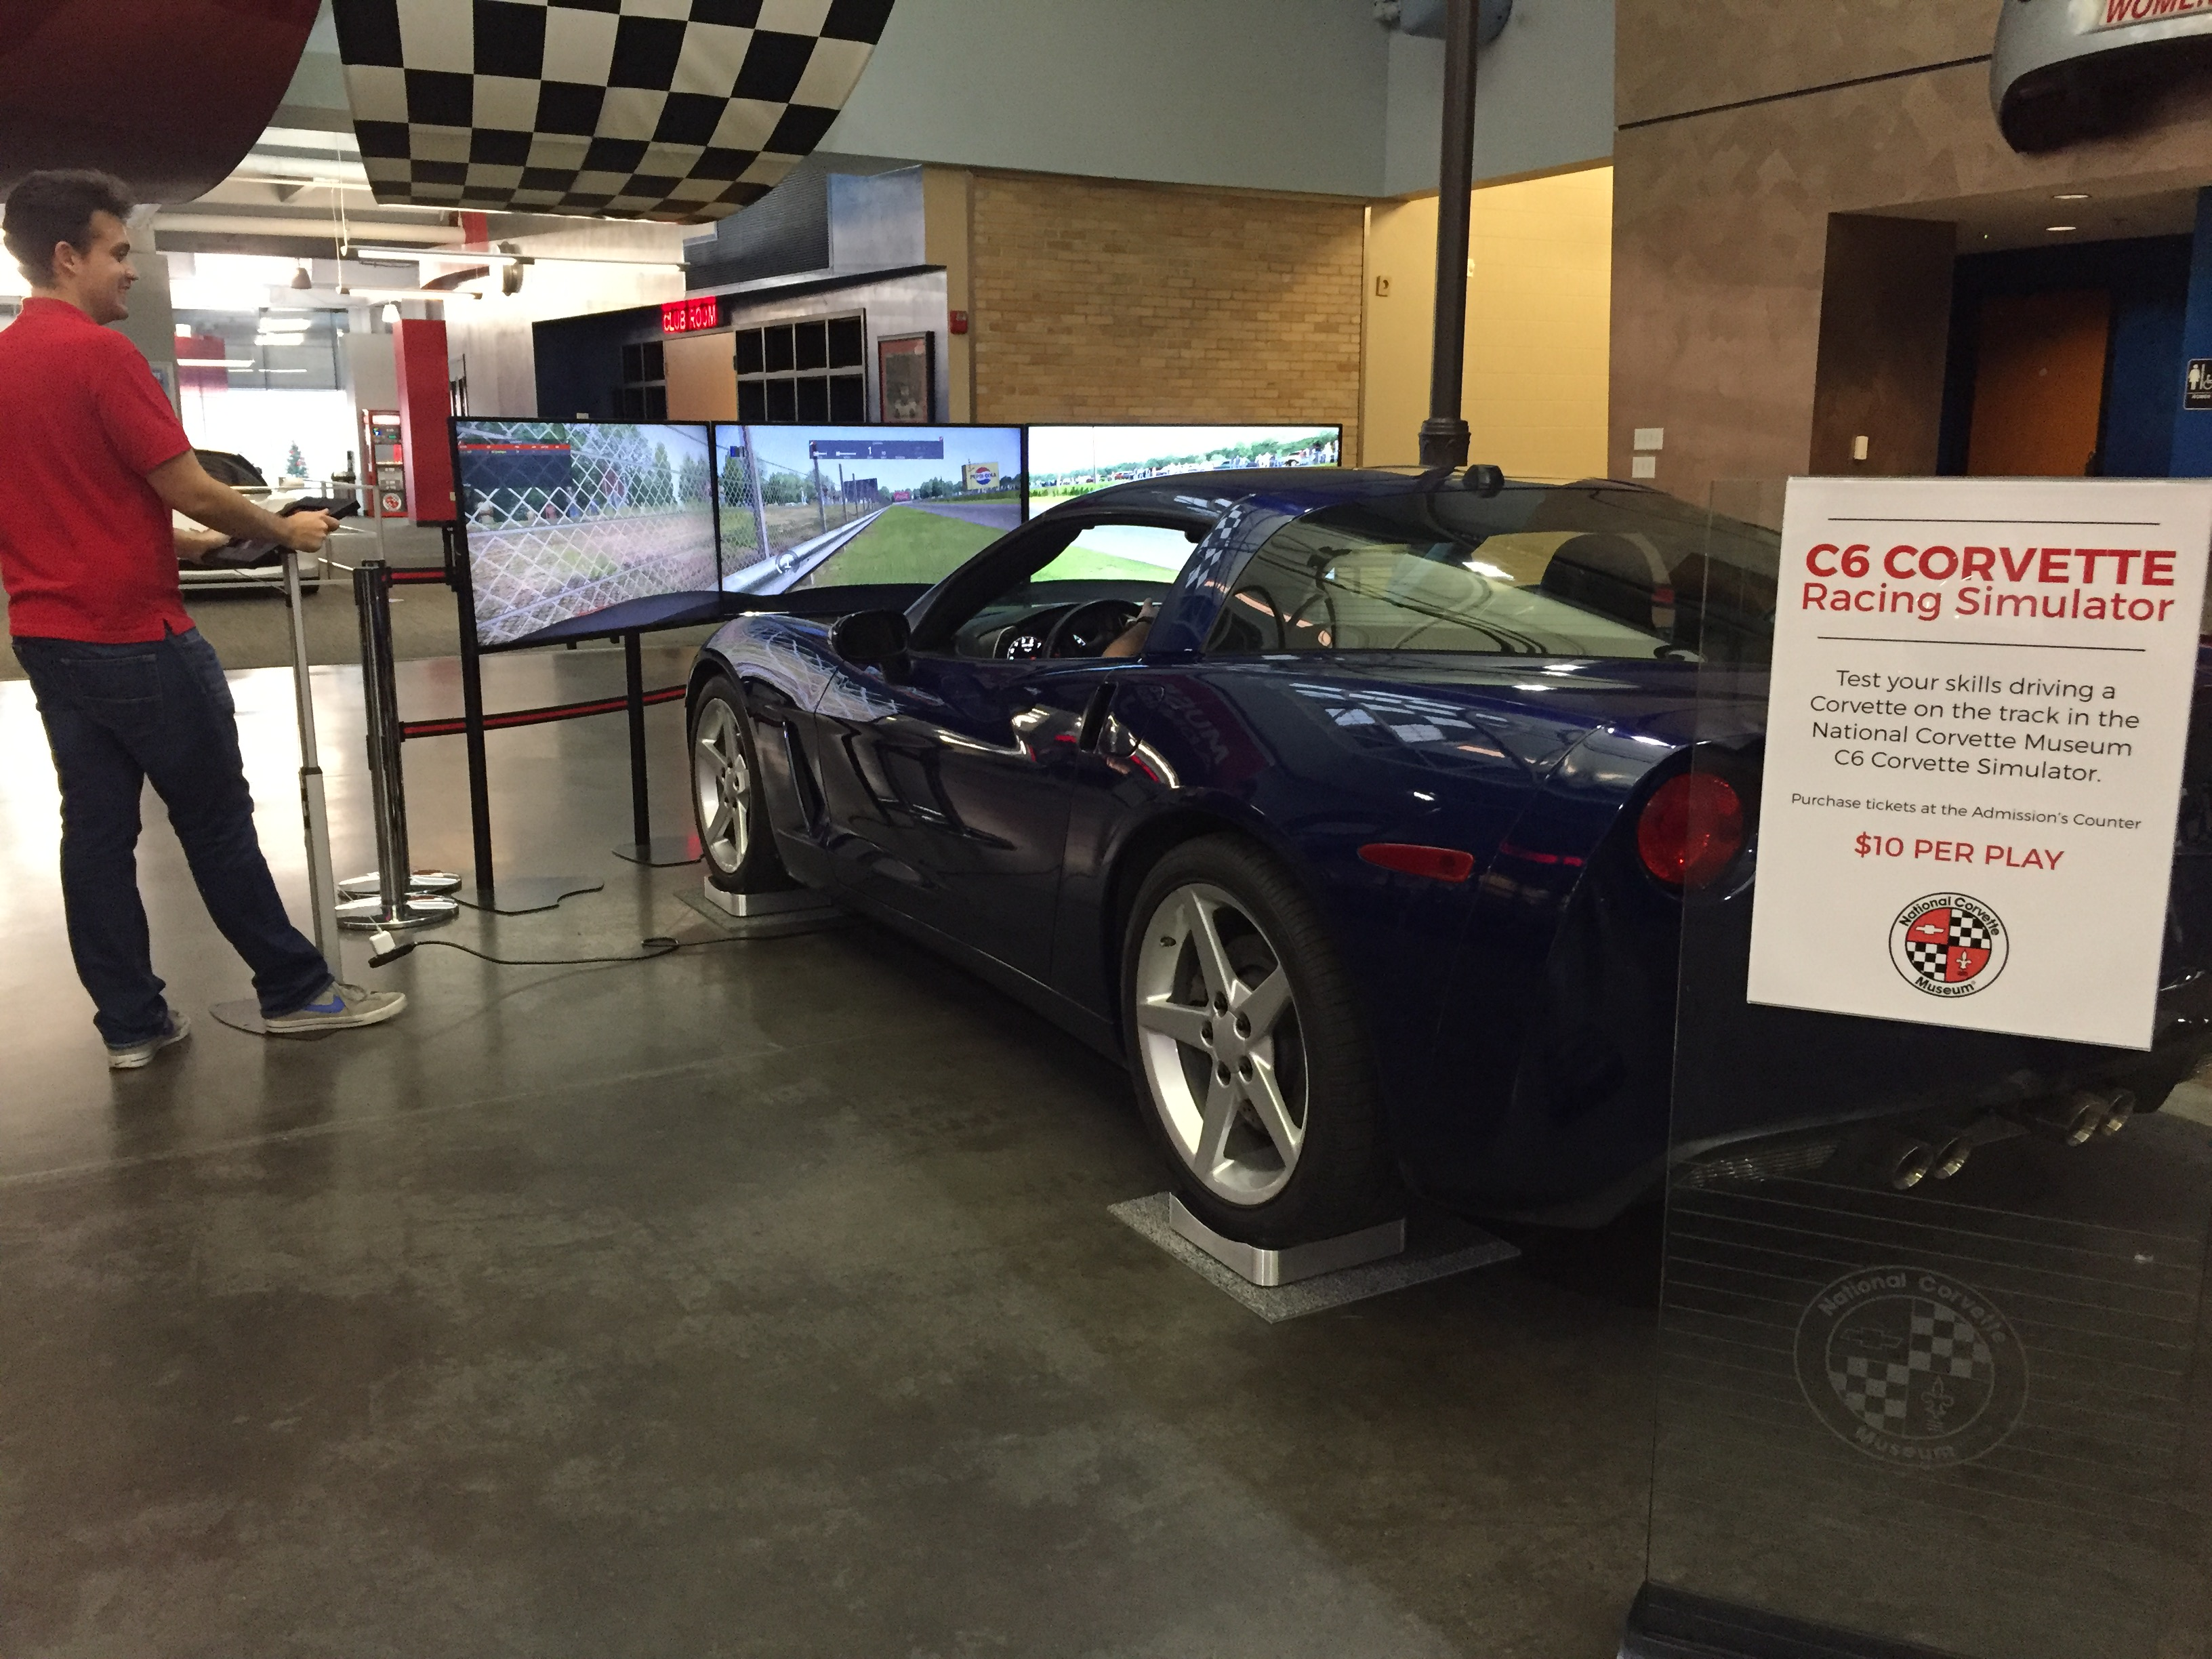 Monthly Car Rentals >> National Corvette Museum Offers New Racing Experience – National Corvette Museum